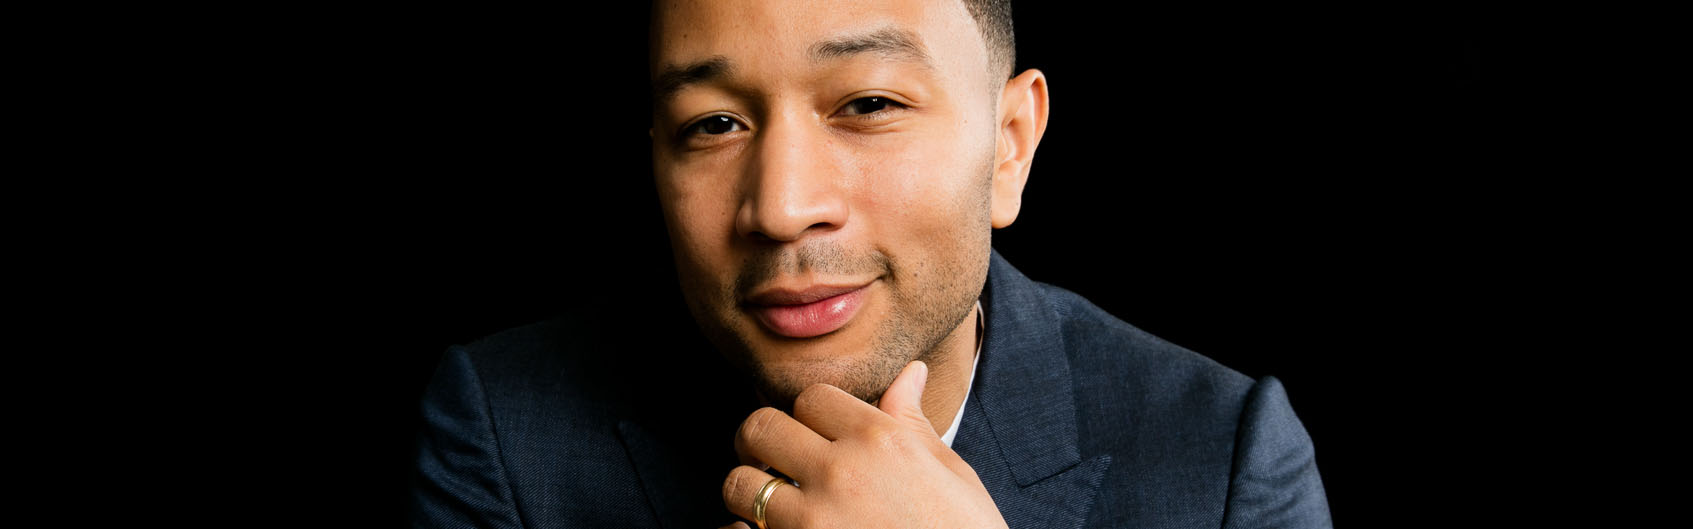 John Legend Photos by Gino DePinto, AOL